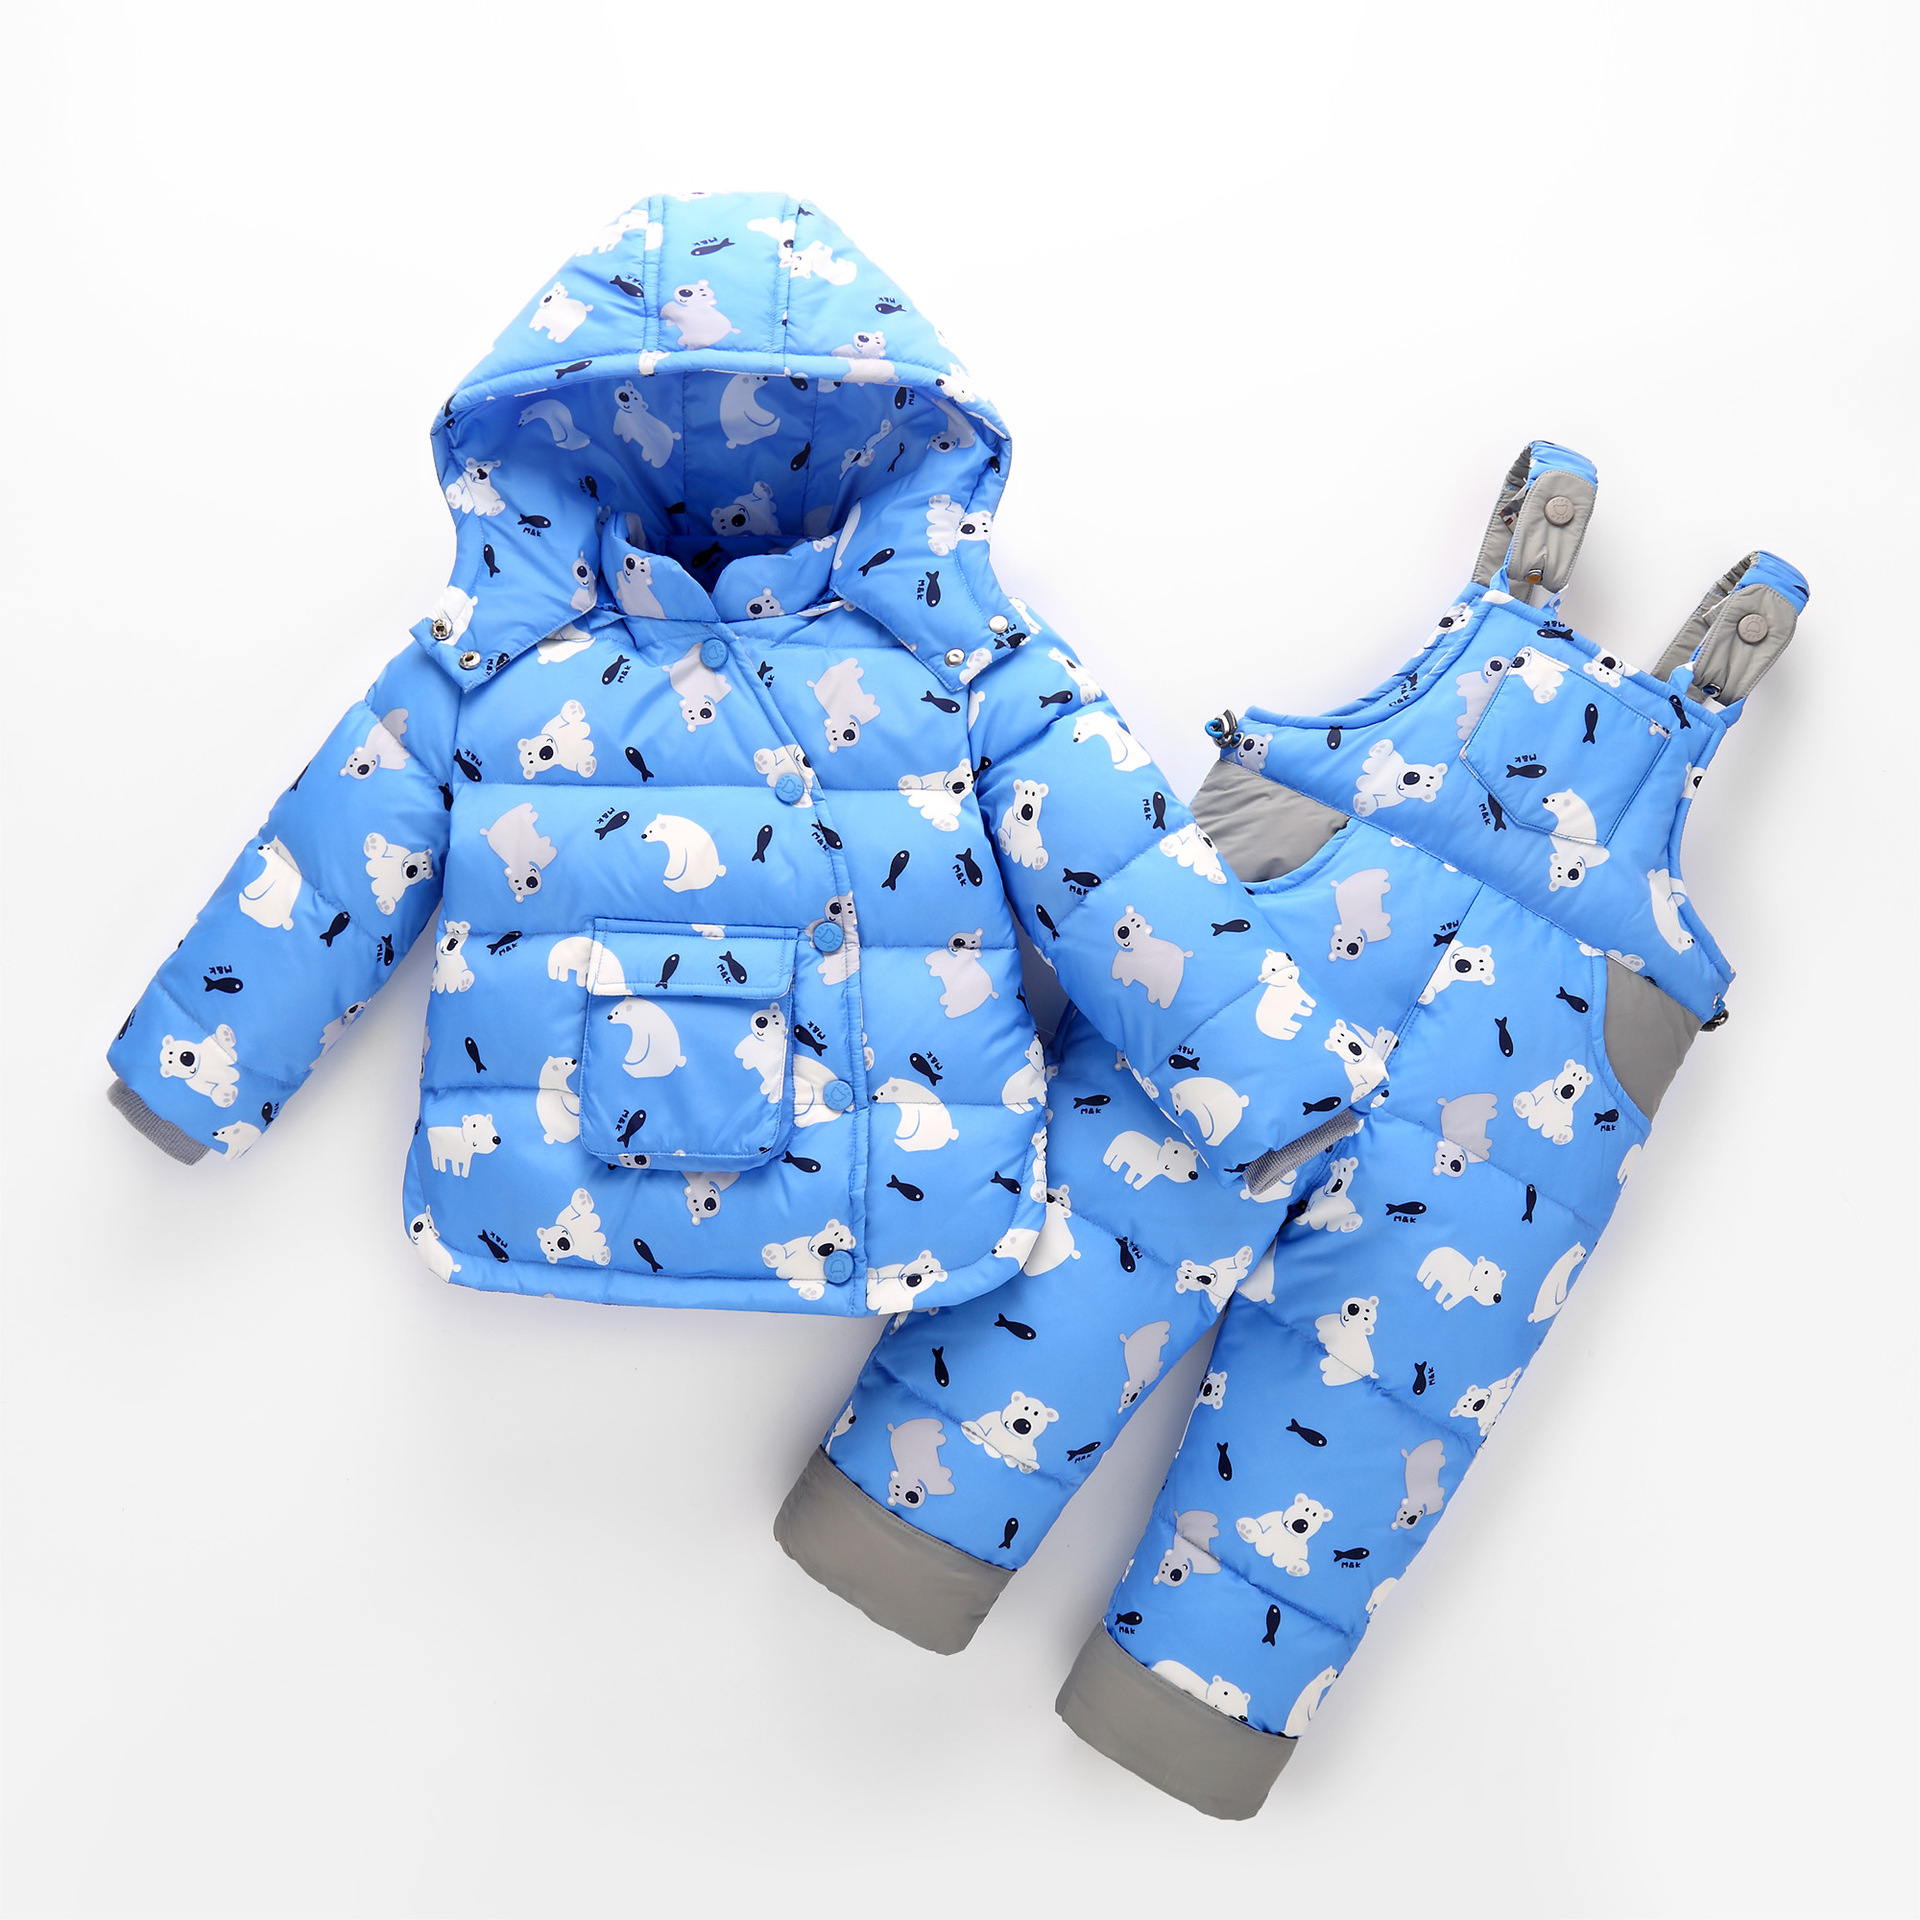 Winter Suits for Boys Girls 2018 Boys Ski Suit Children Clothing Set Baby Duck Down Jacket Coat + Overalls Warm Kids Snowsuit toddler snowsuit children winter duck down jacket boys warm jackets kids fur collar outerwear girl overalls suits coat bib pants